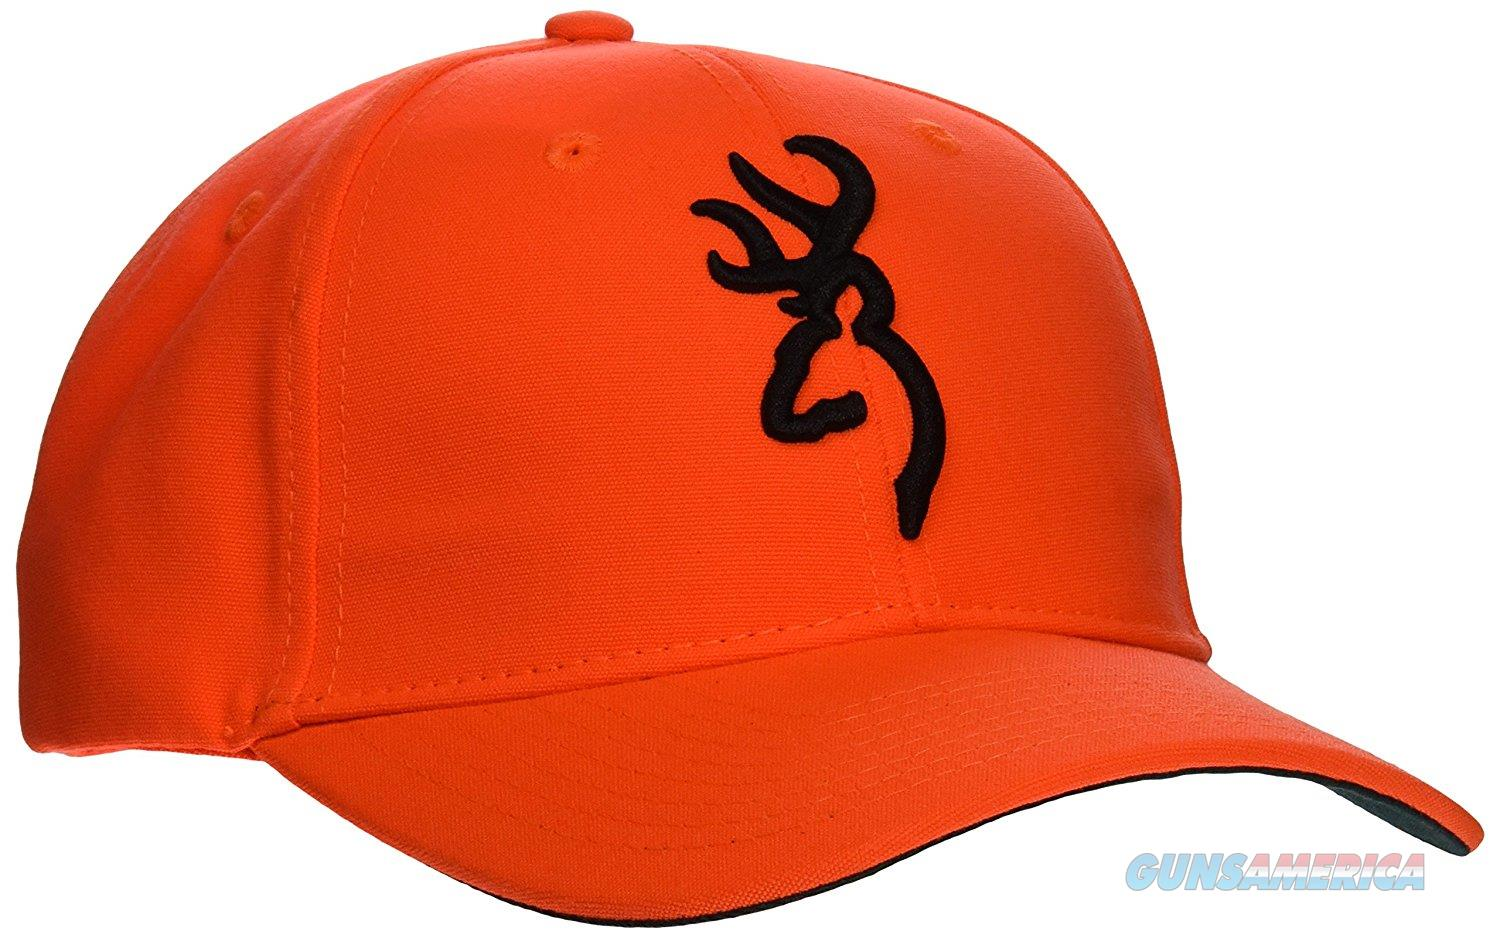 Browning Hunting Cap Hat, Safety 3D, Blaze Orange With Logo - 30840501  Non-Guns > Hunting Clothing and Equipment > Clothing > Blaze Orange